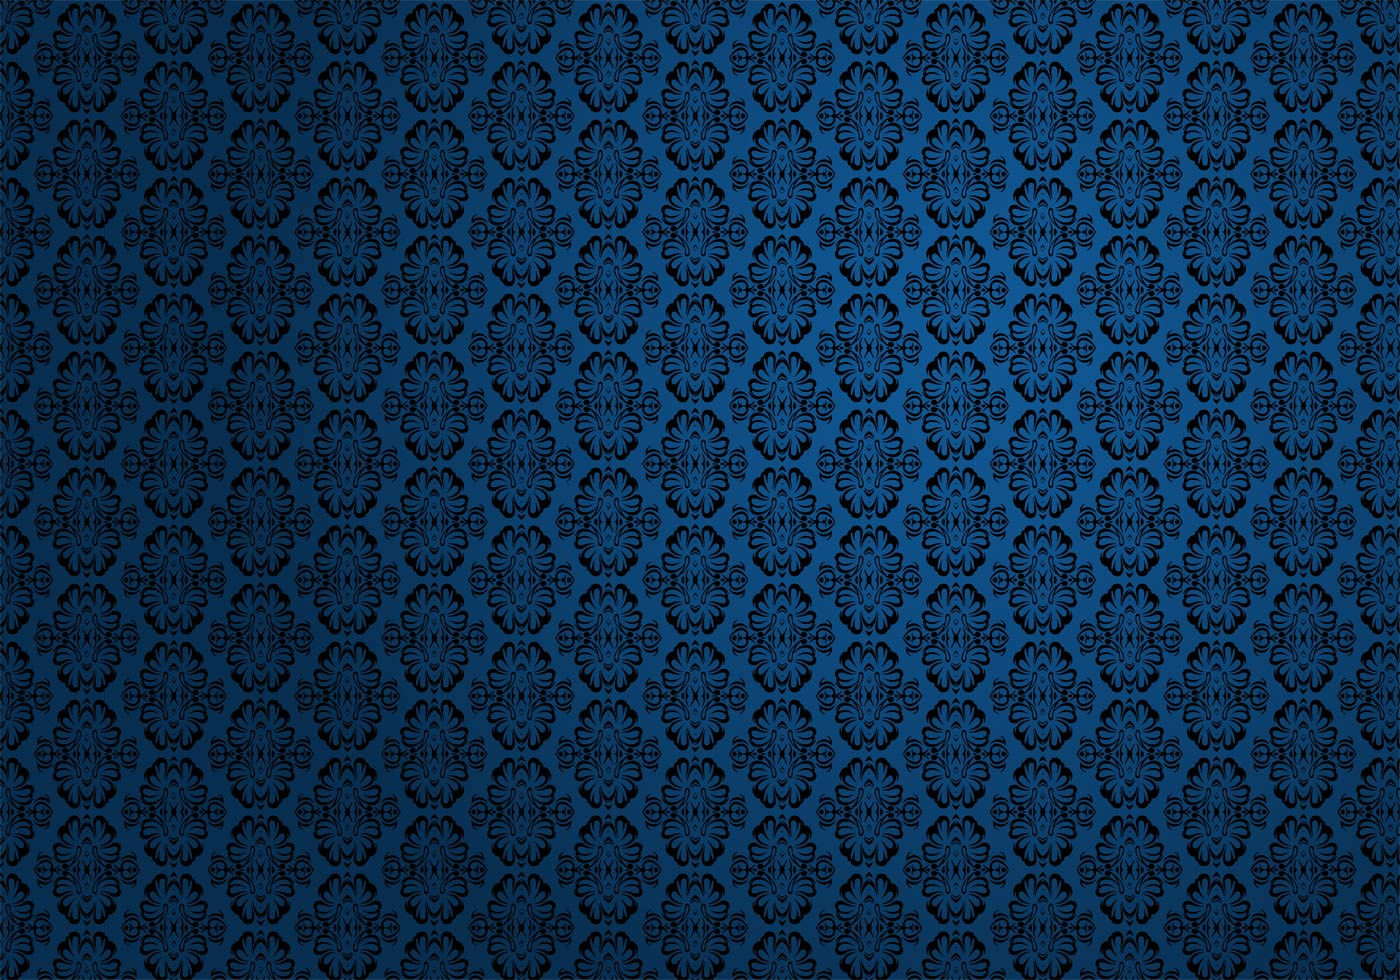 free wallpaper pattern vector download free vector art filigree vector artwork for free filigree vector patterns